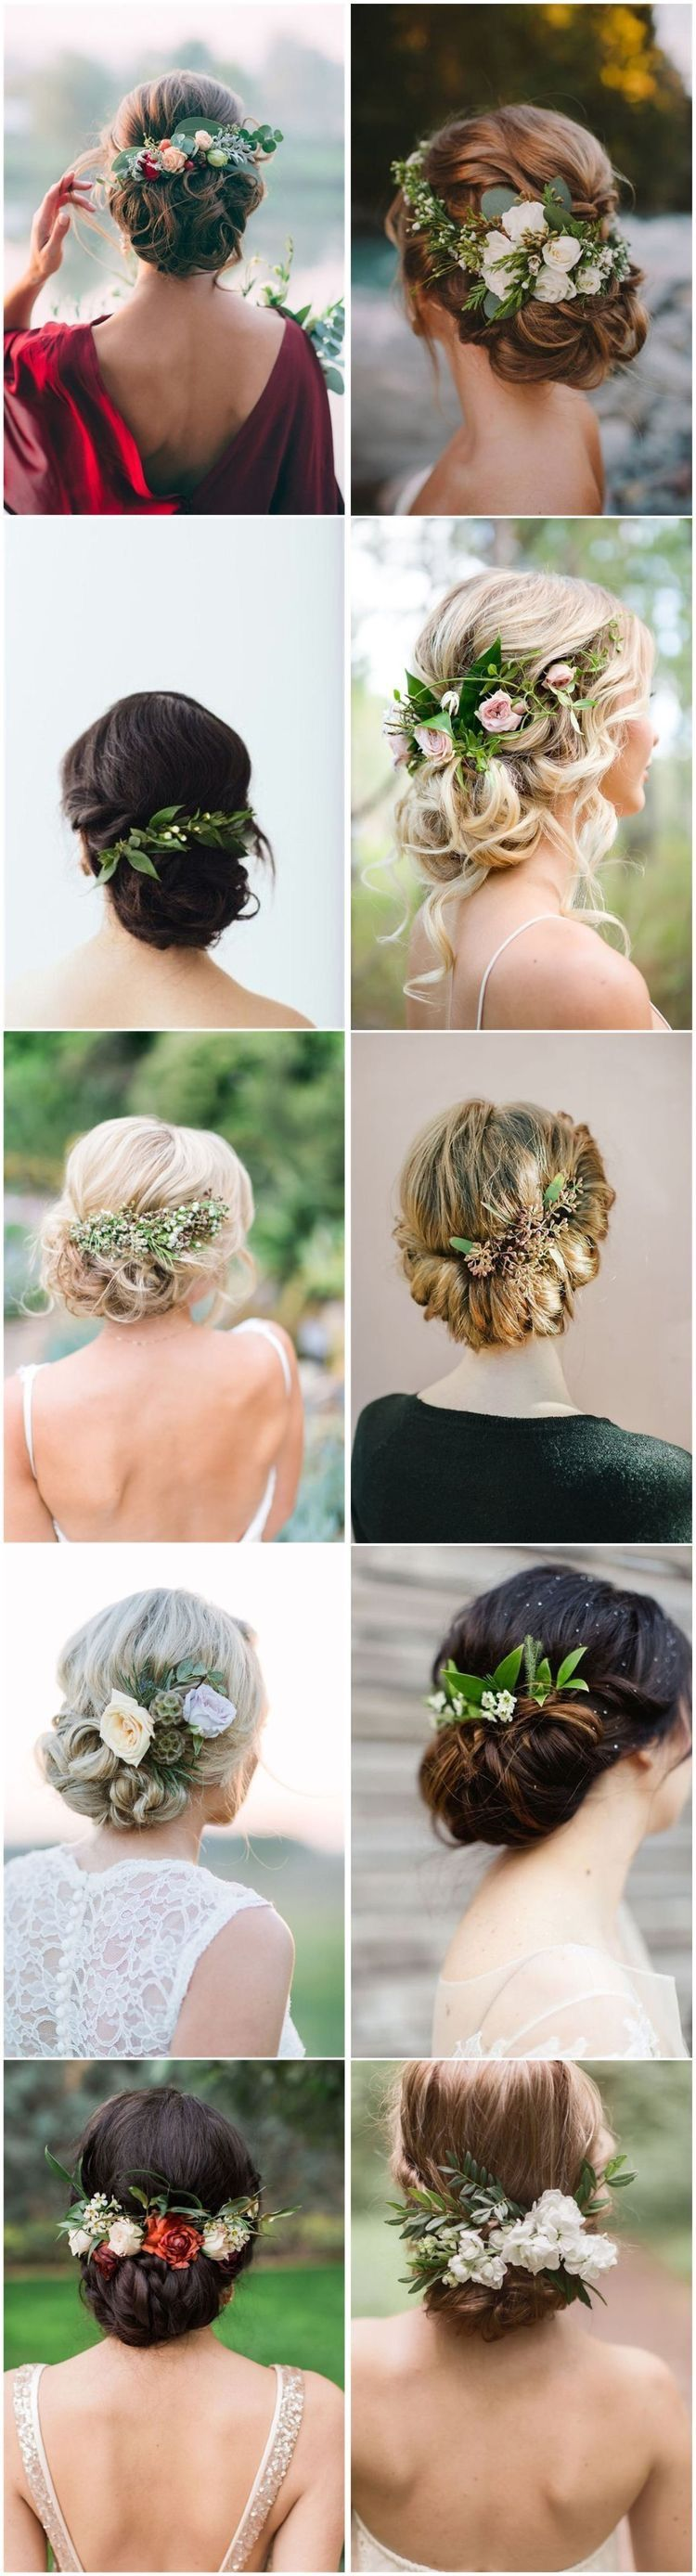 3 down and left | flower crowns in 2019 | wedding hairstyles